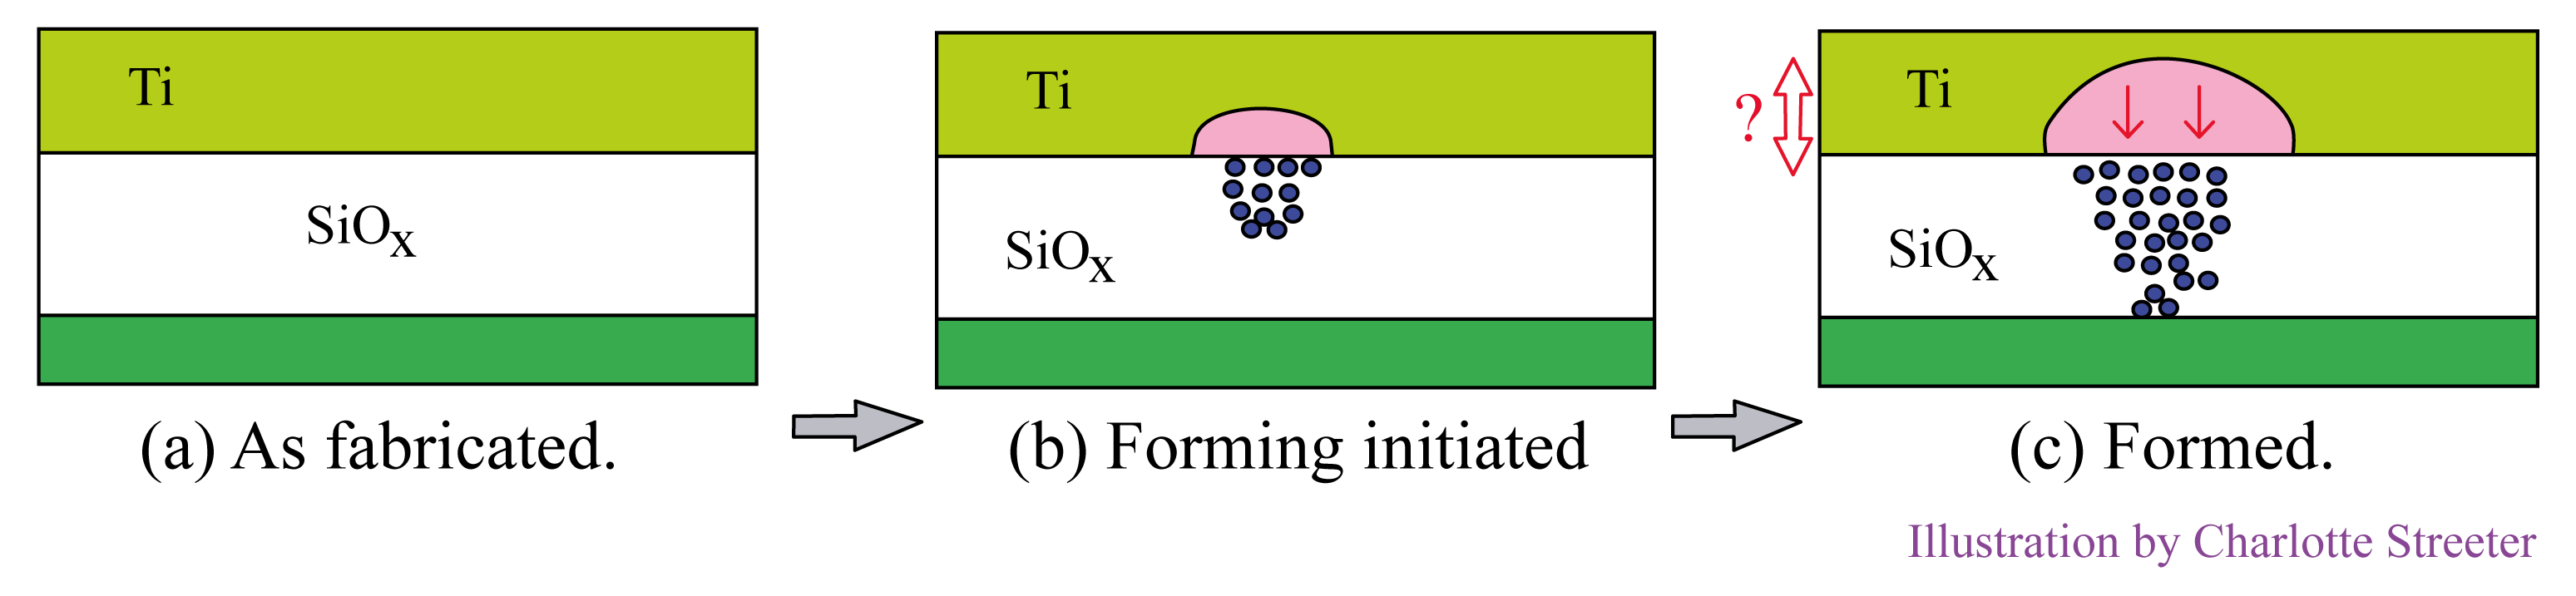 Three memory element cross sections with oxygen vacancies mushrooming above filament, left to right: (a) as fabricated, (b) forming initiated, (c) formed